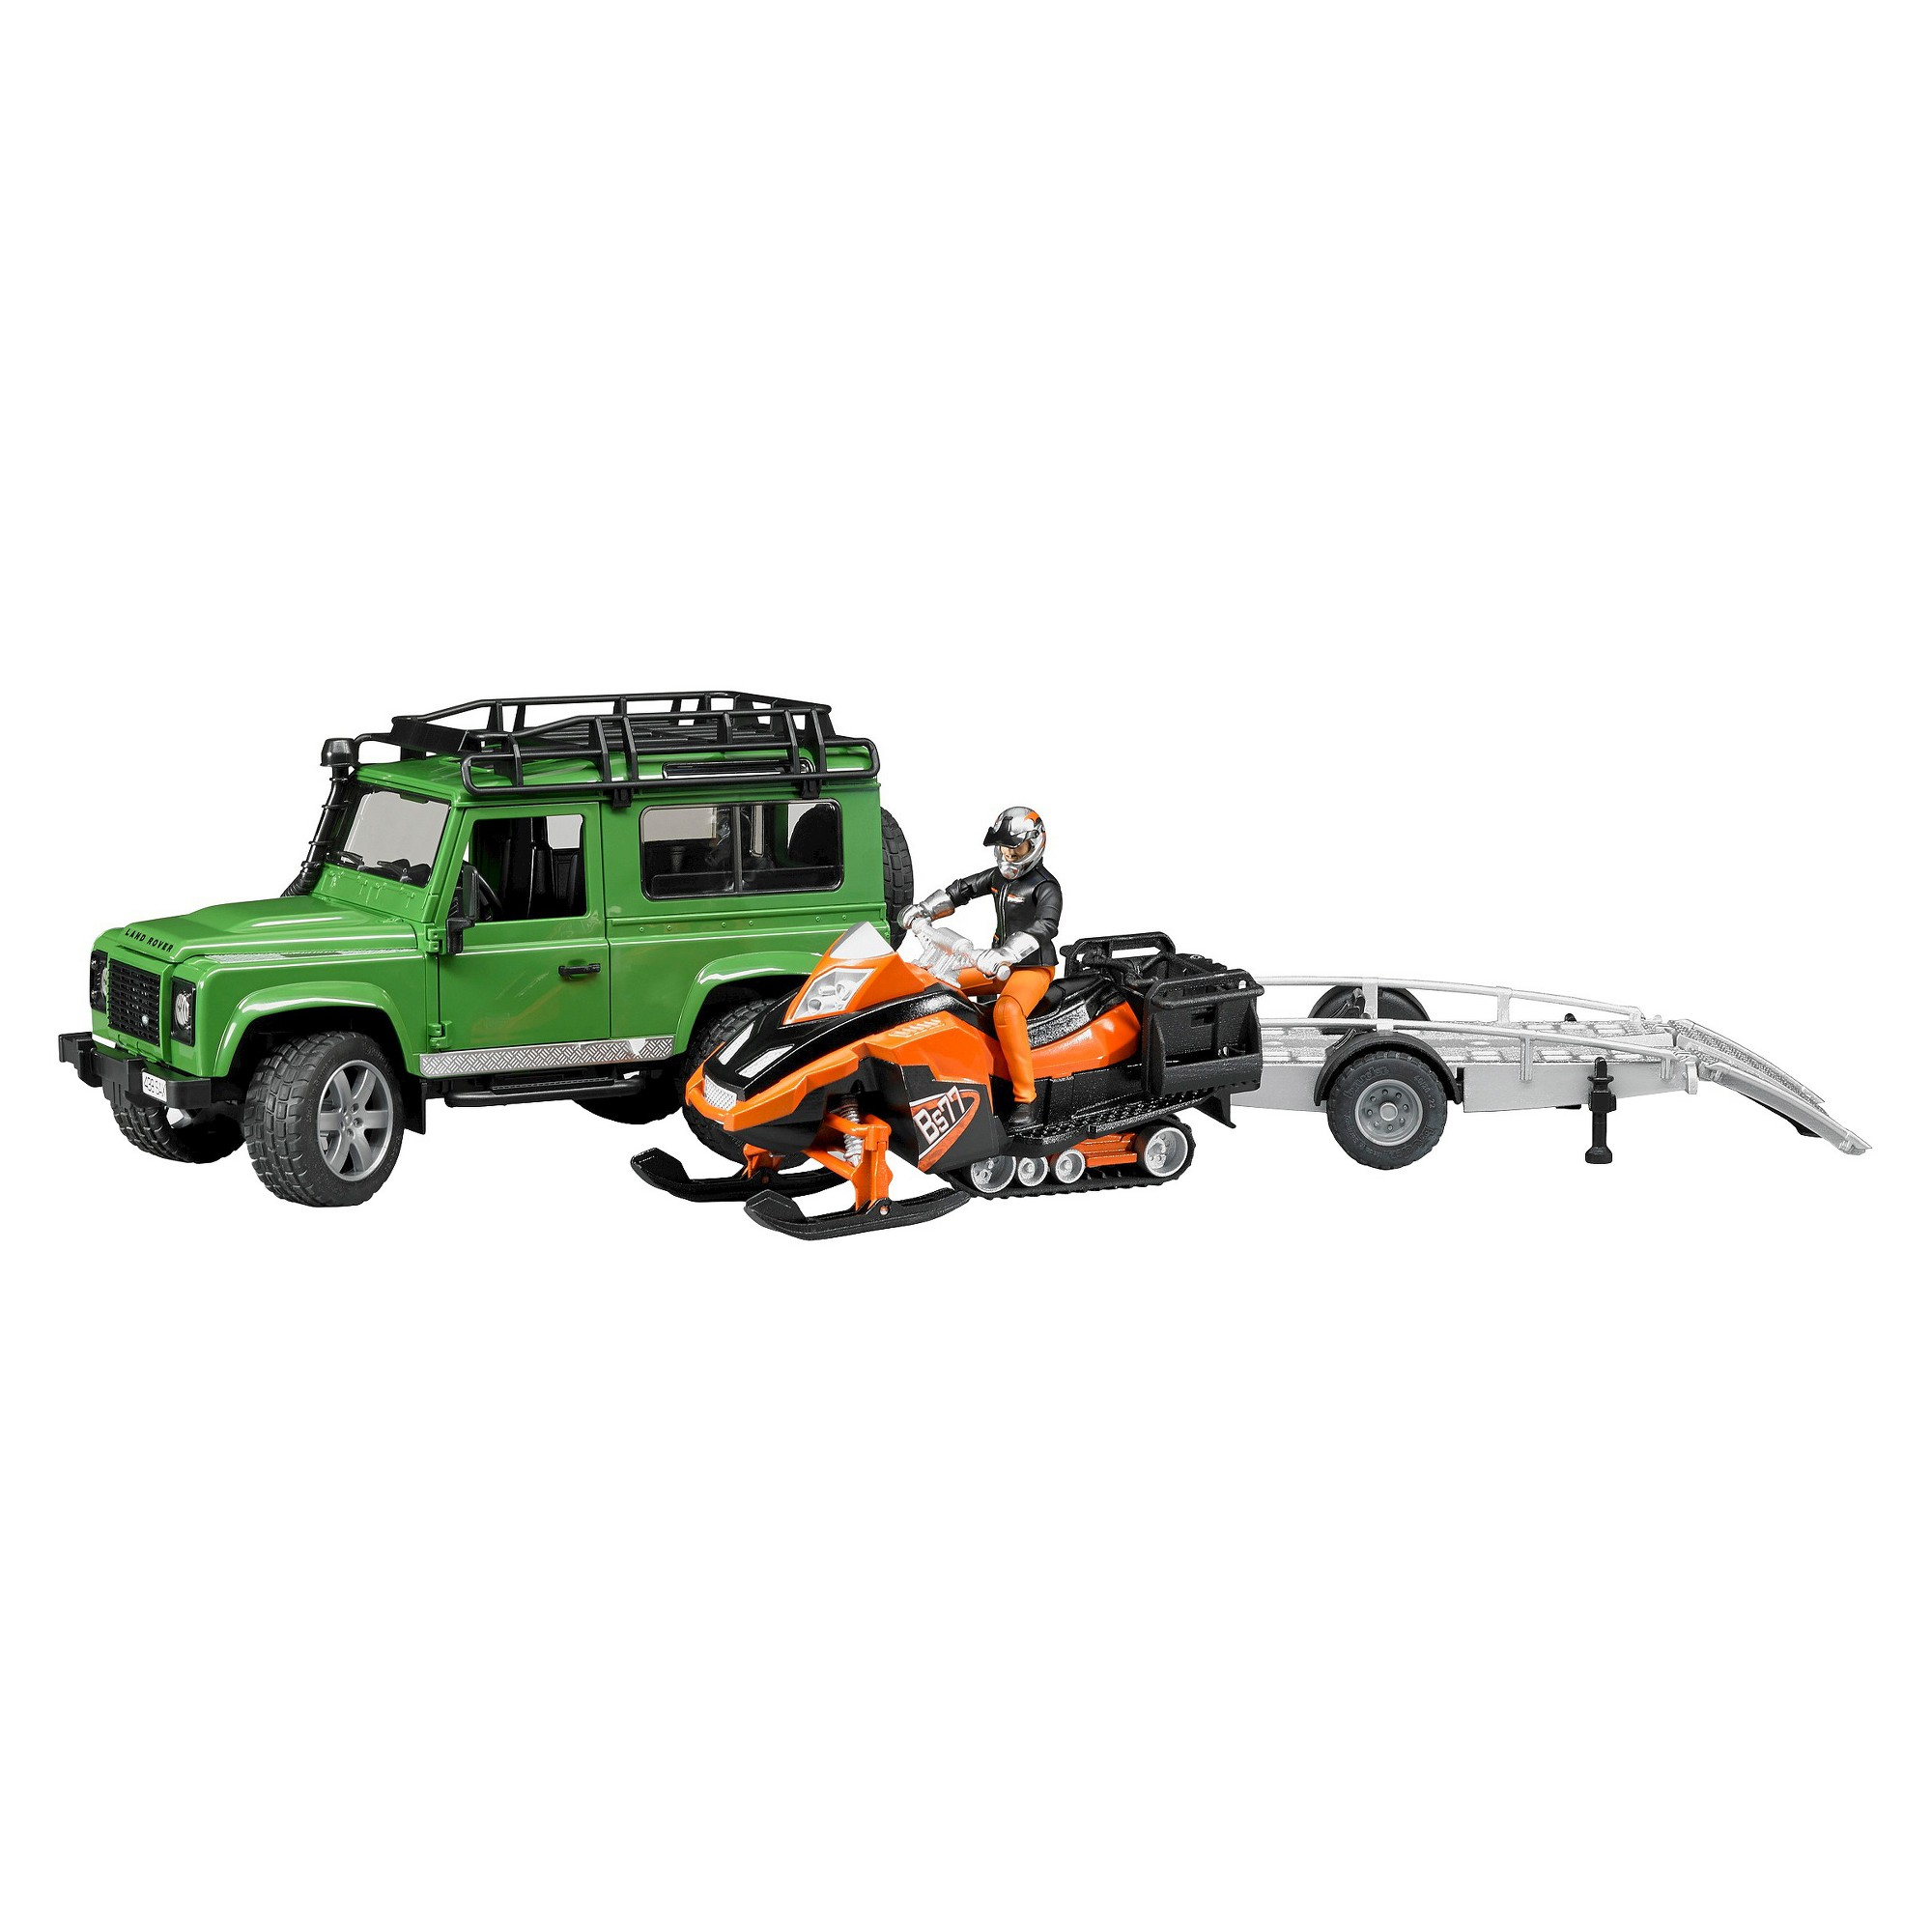 Land Rover Defender W Trailer Snowmobile And Skier Land Rover Defender Land Rover Snowmobile